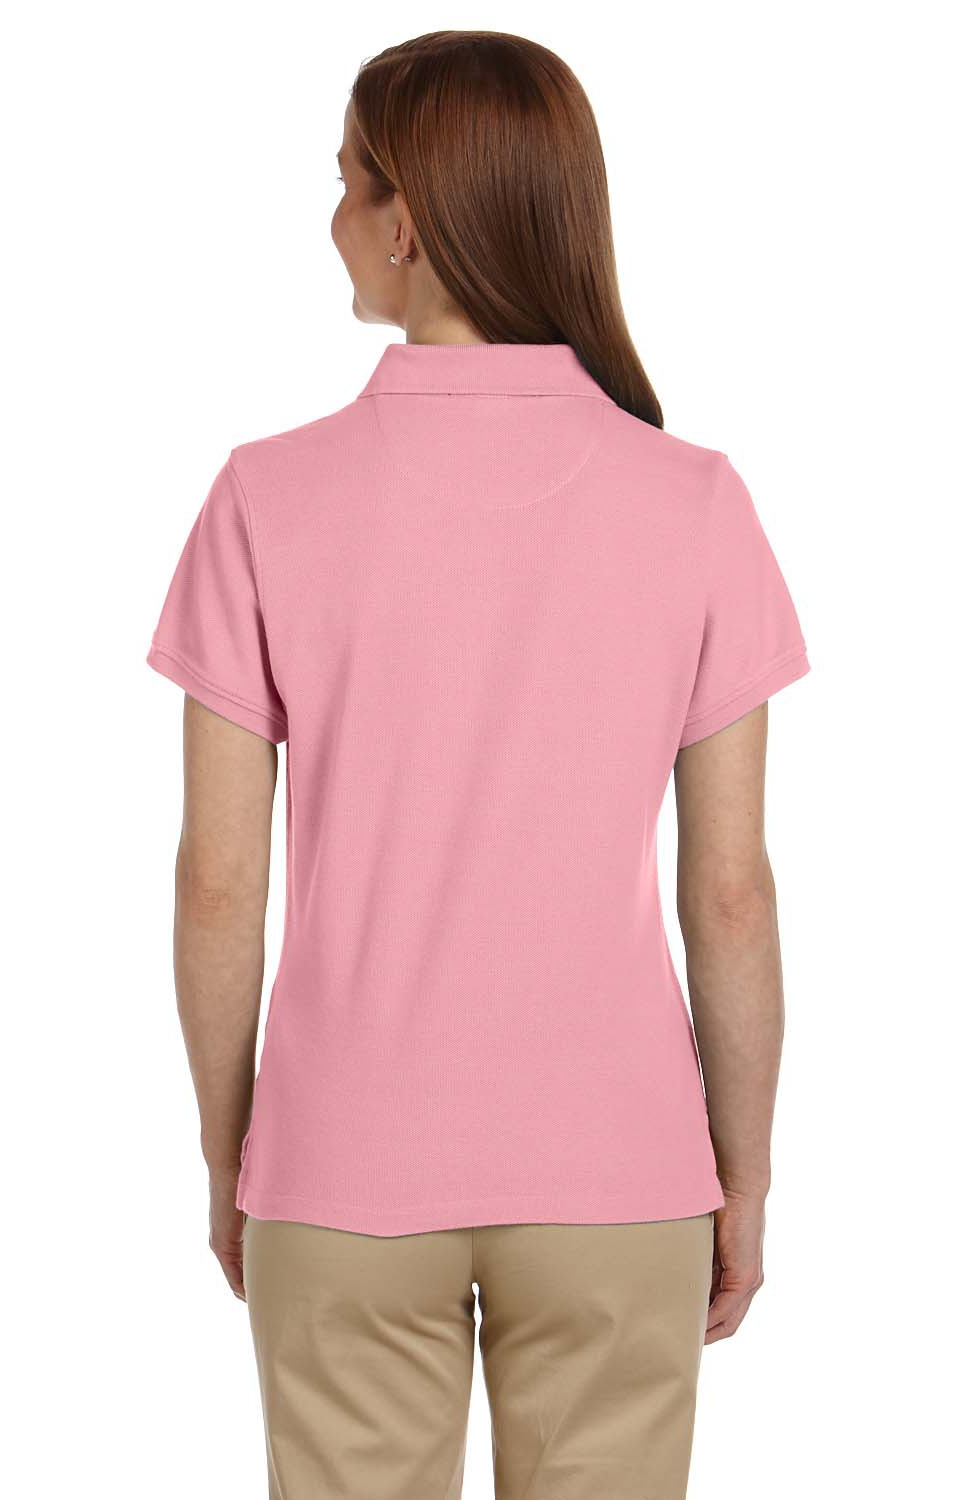 chestnut hill hindu single women Buy chestnut hill ch500w ladies' 32 singles long sleeve twill shirt at wholesale price apparelnbagscom have large collection of chestnut hill free shipping available on qualified orders.